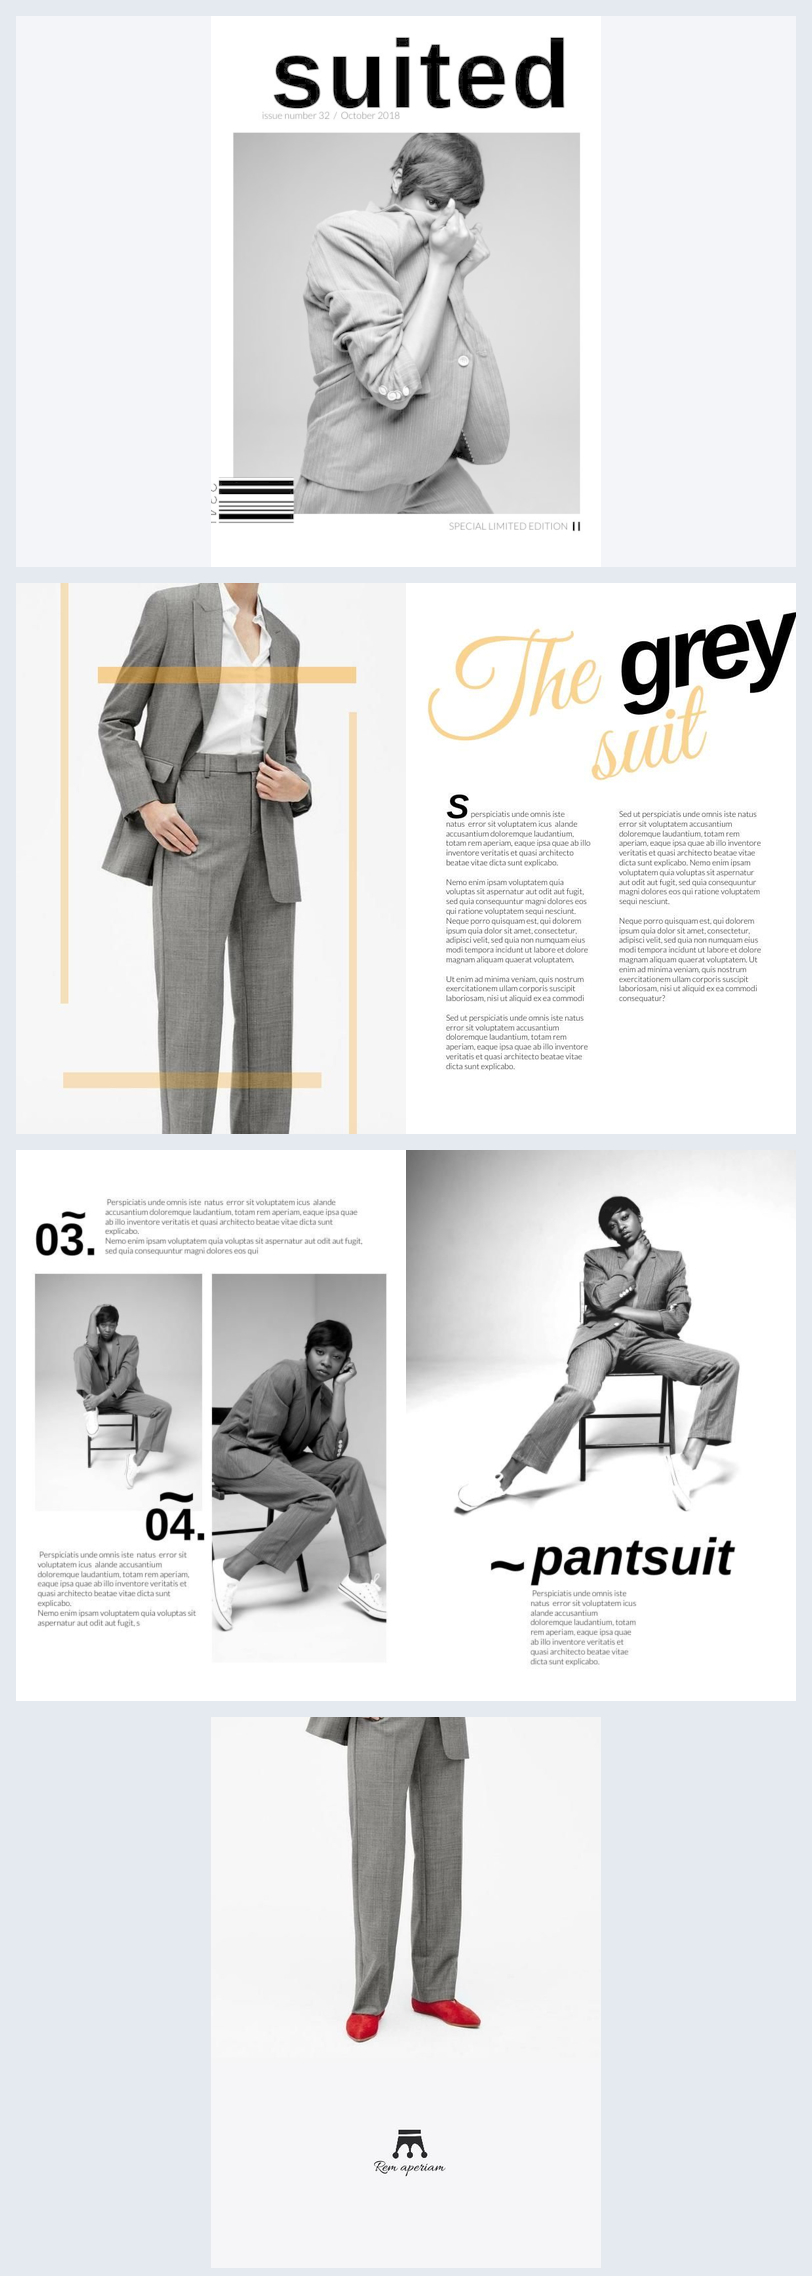 Black & White Fashion Magazine Design